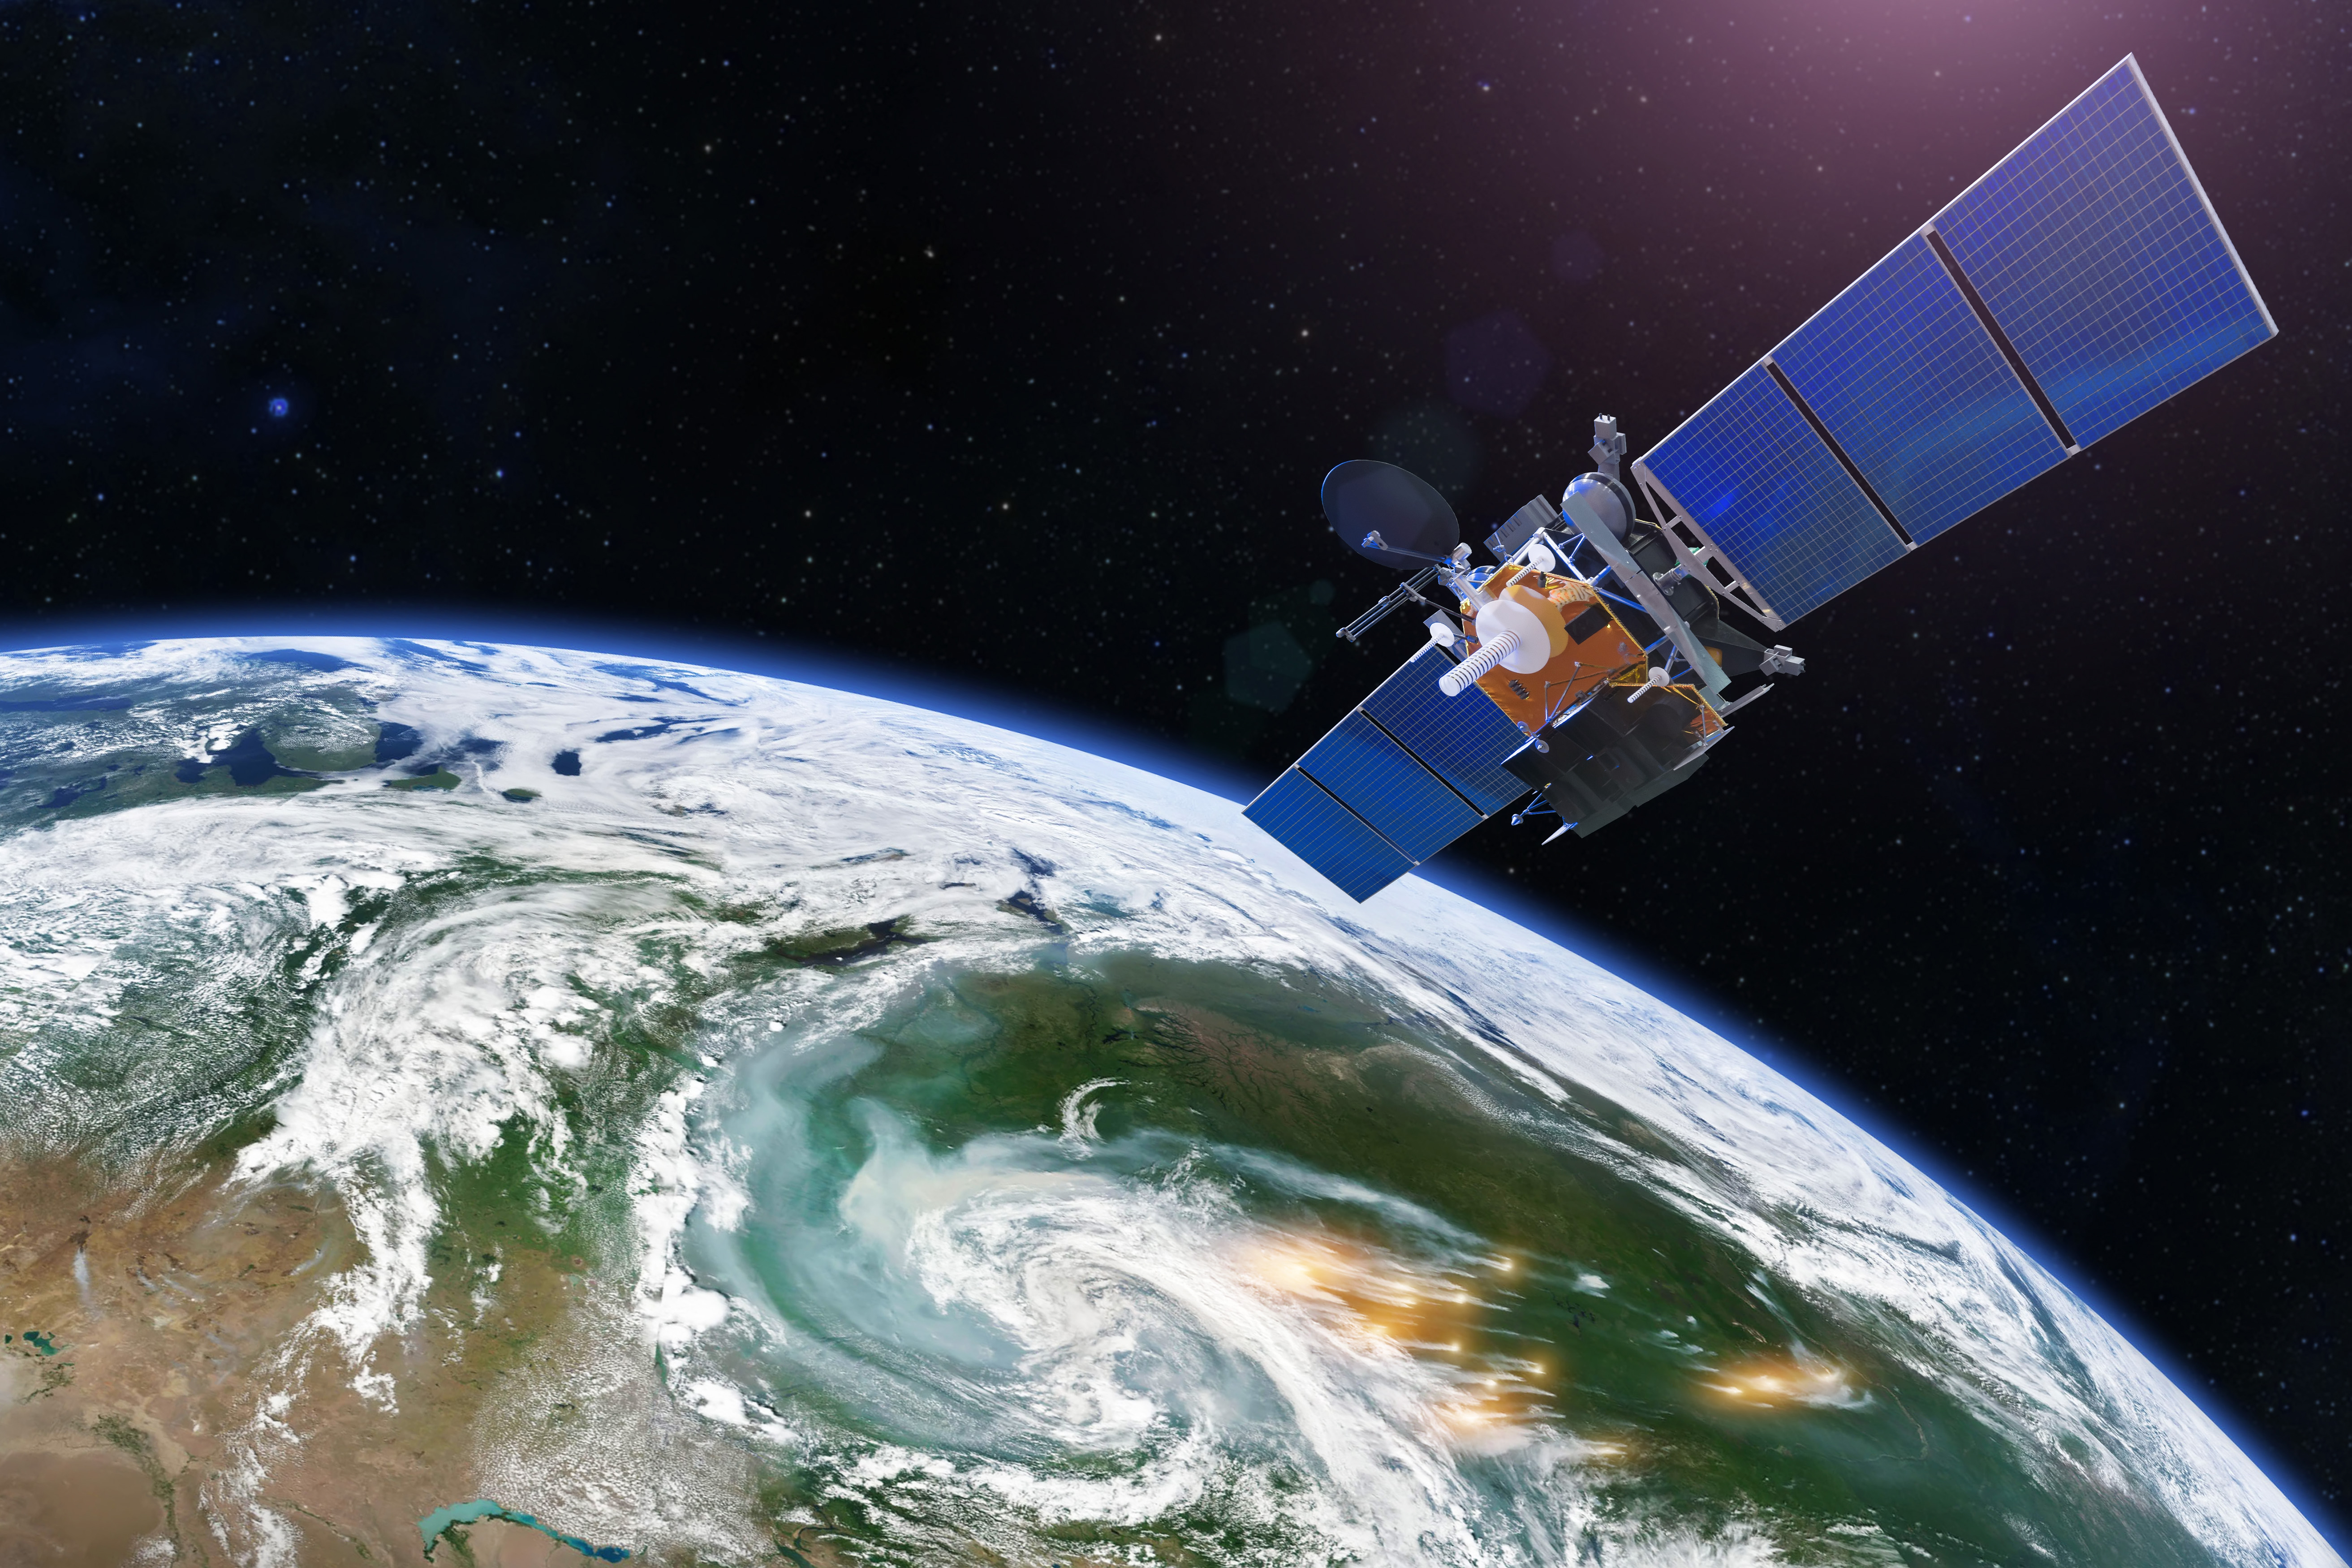 Remote Monitoring by Quantitative Analysis of Available Satellite Images